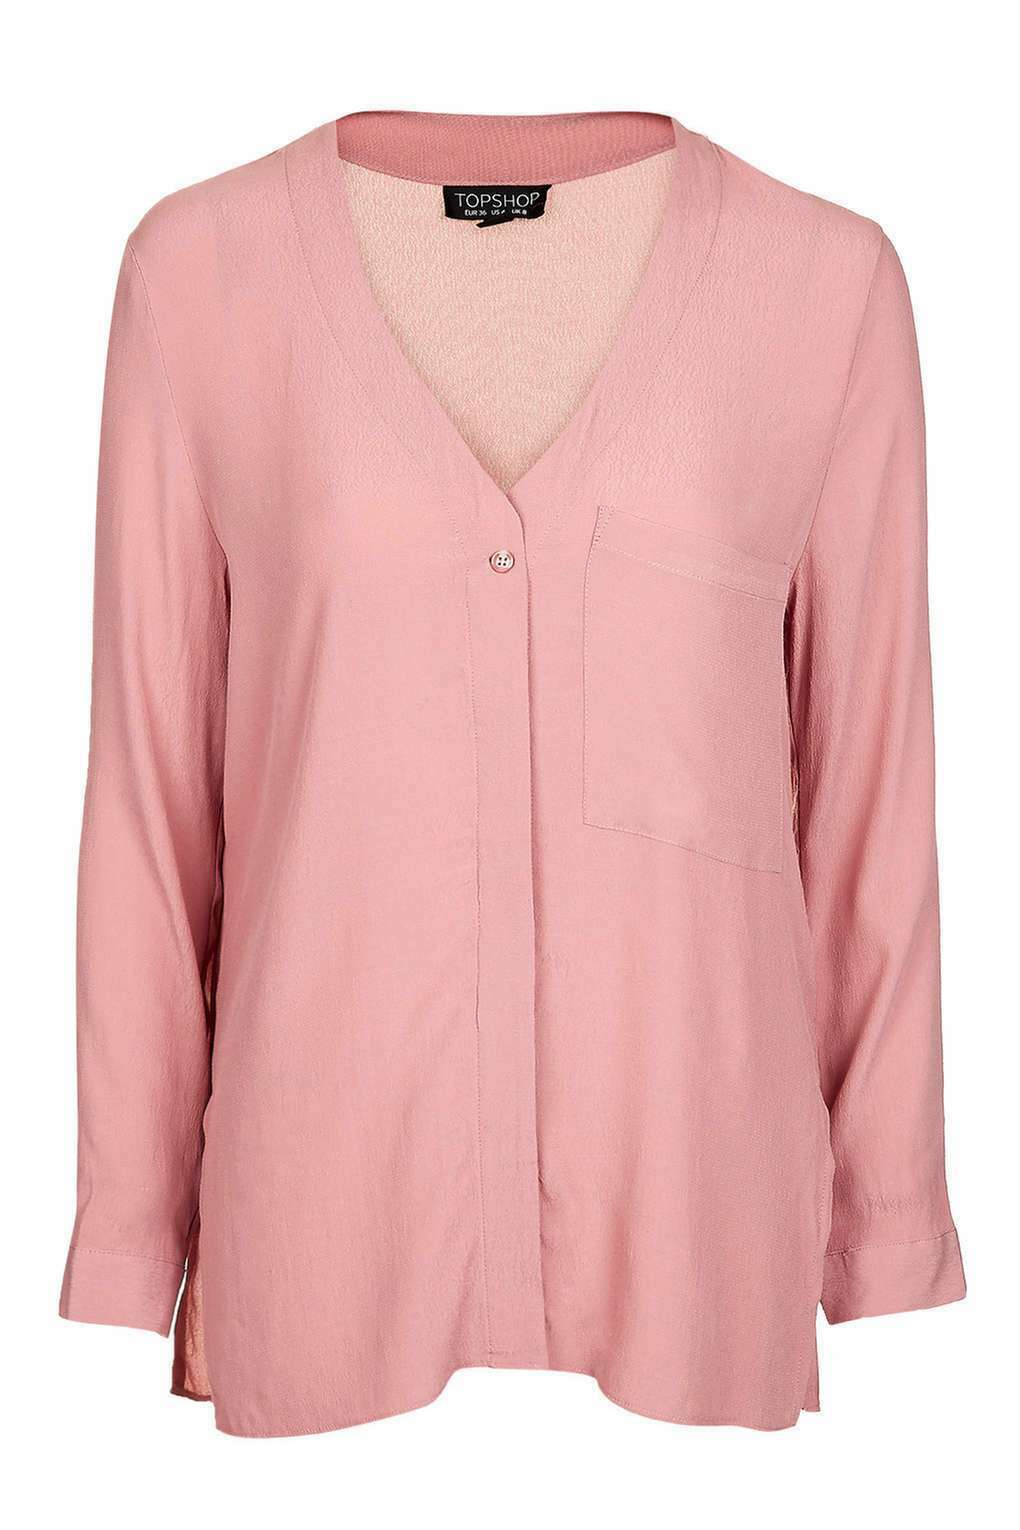 Topshop rosa Blush Manica Lunga Slouch Slouch Slouch Pocket Camicia Blusa Top EUR 38 US 6 10fe68